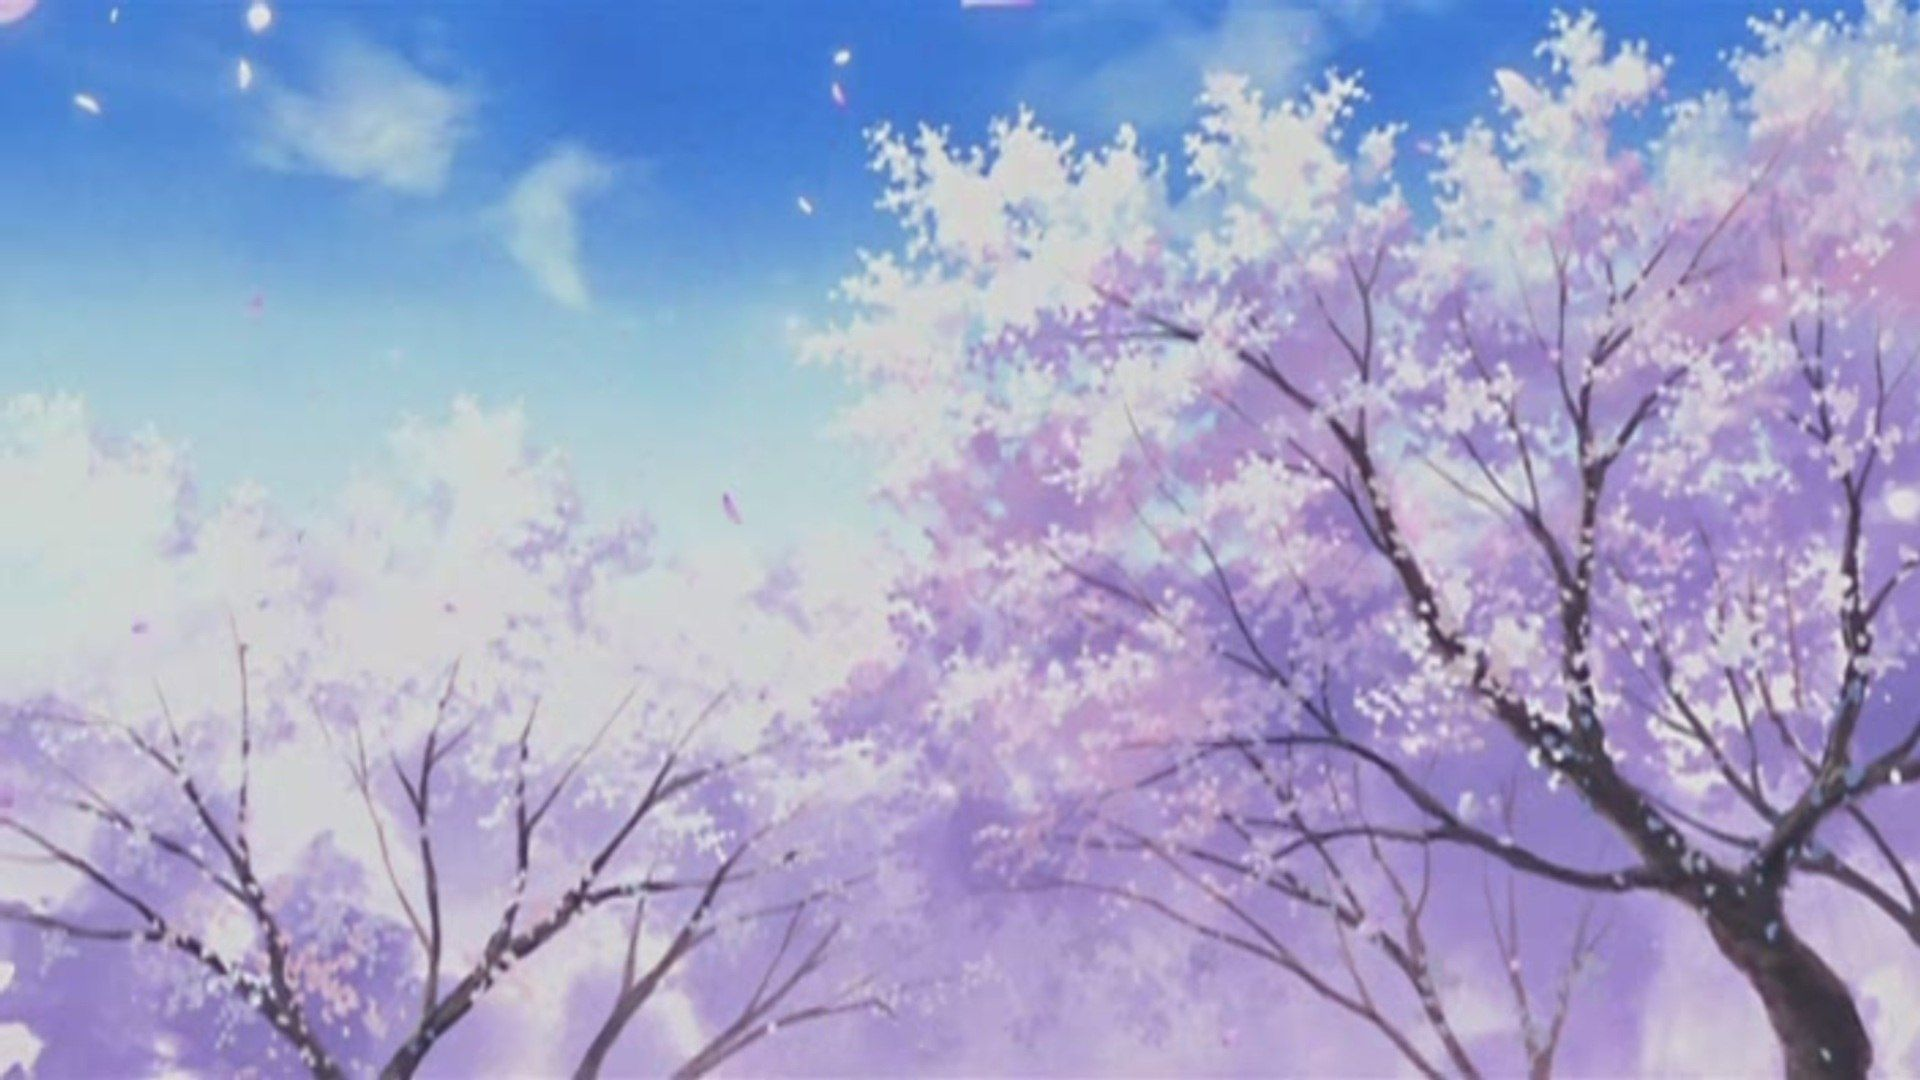 Anime Scenery Wallpapers 1080p with HD Wallpaper Kemecer